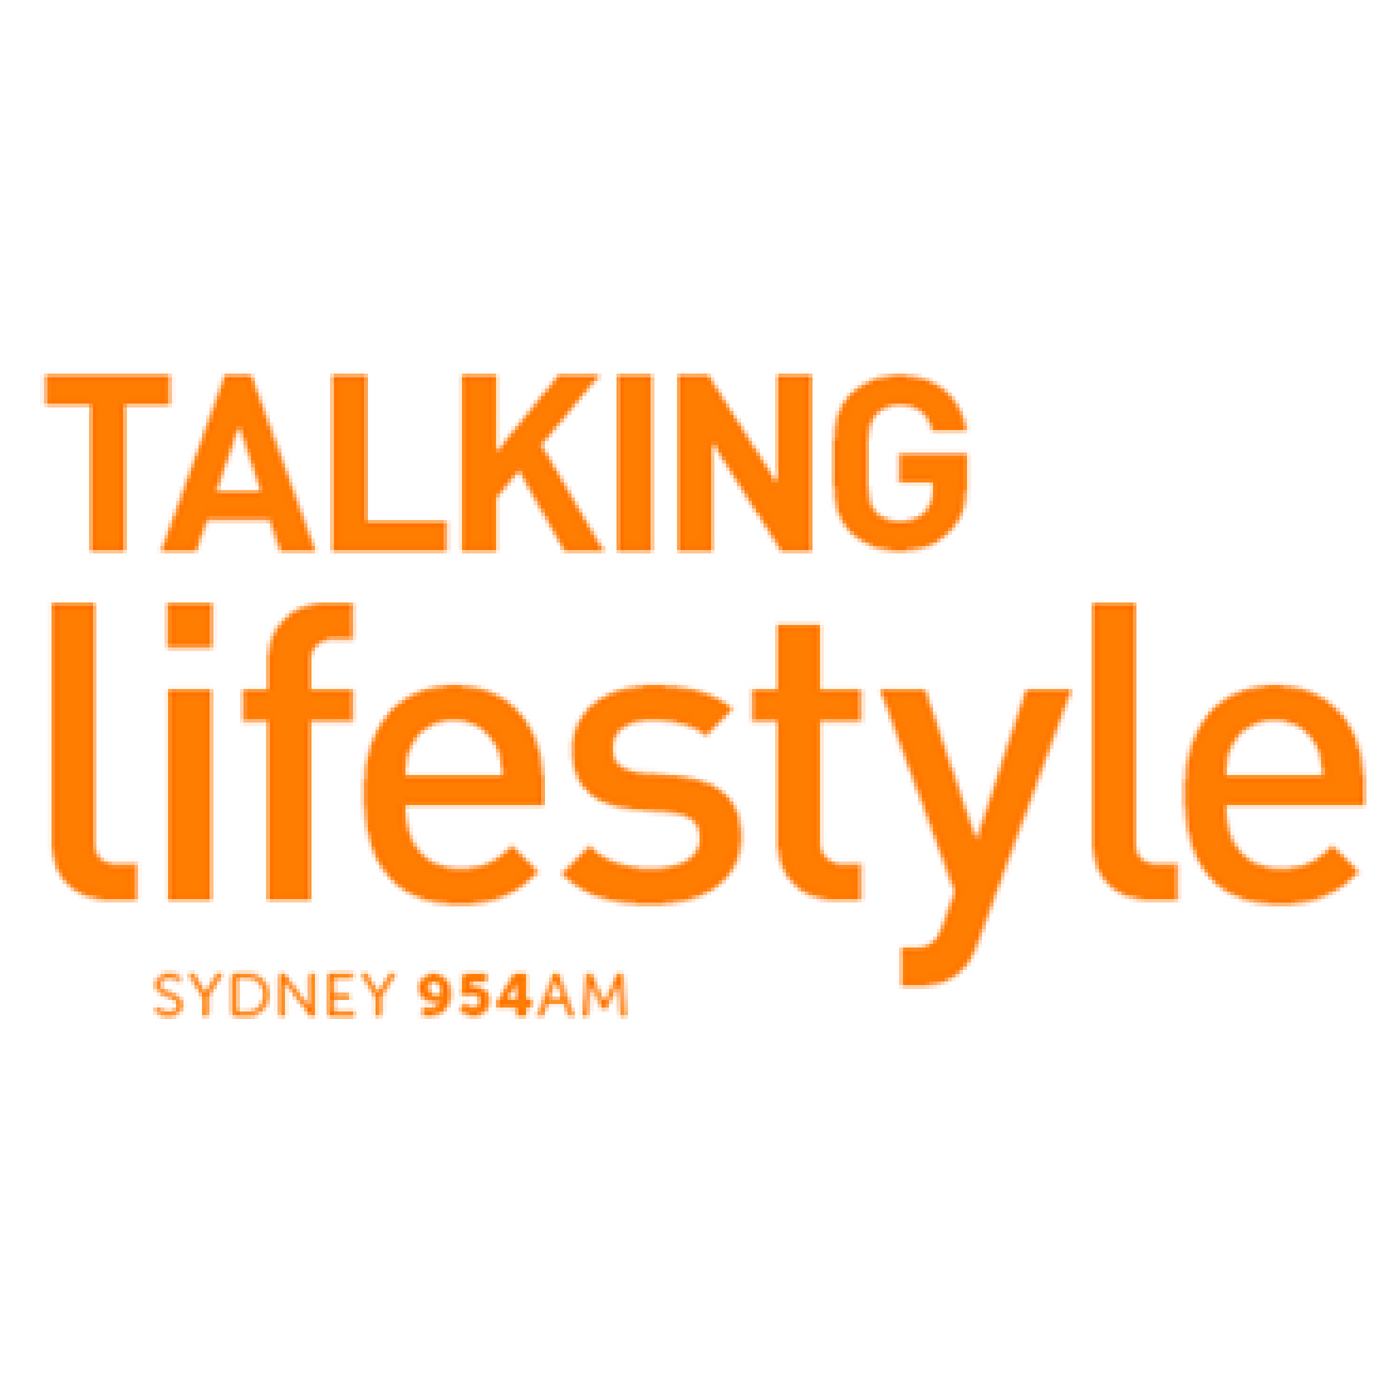 talking lifestyle, 2UE, radio, over 50, 2UE, Drive Time, job seekers, Jane Jackson, Career Coach, Kaylie Harris,